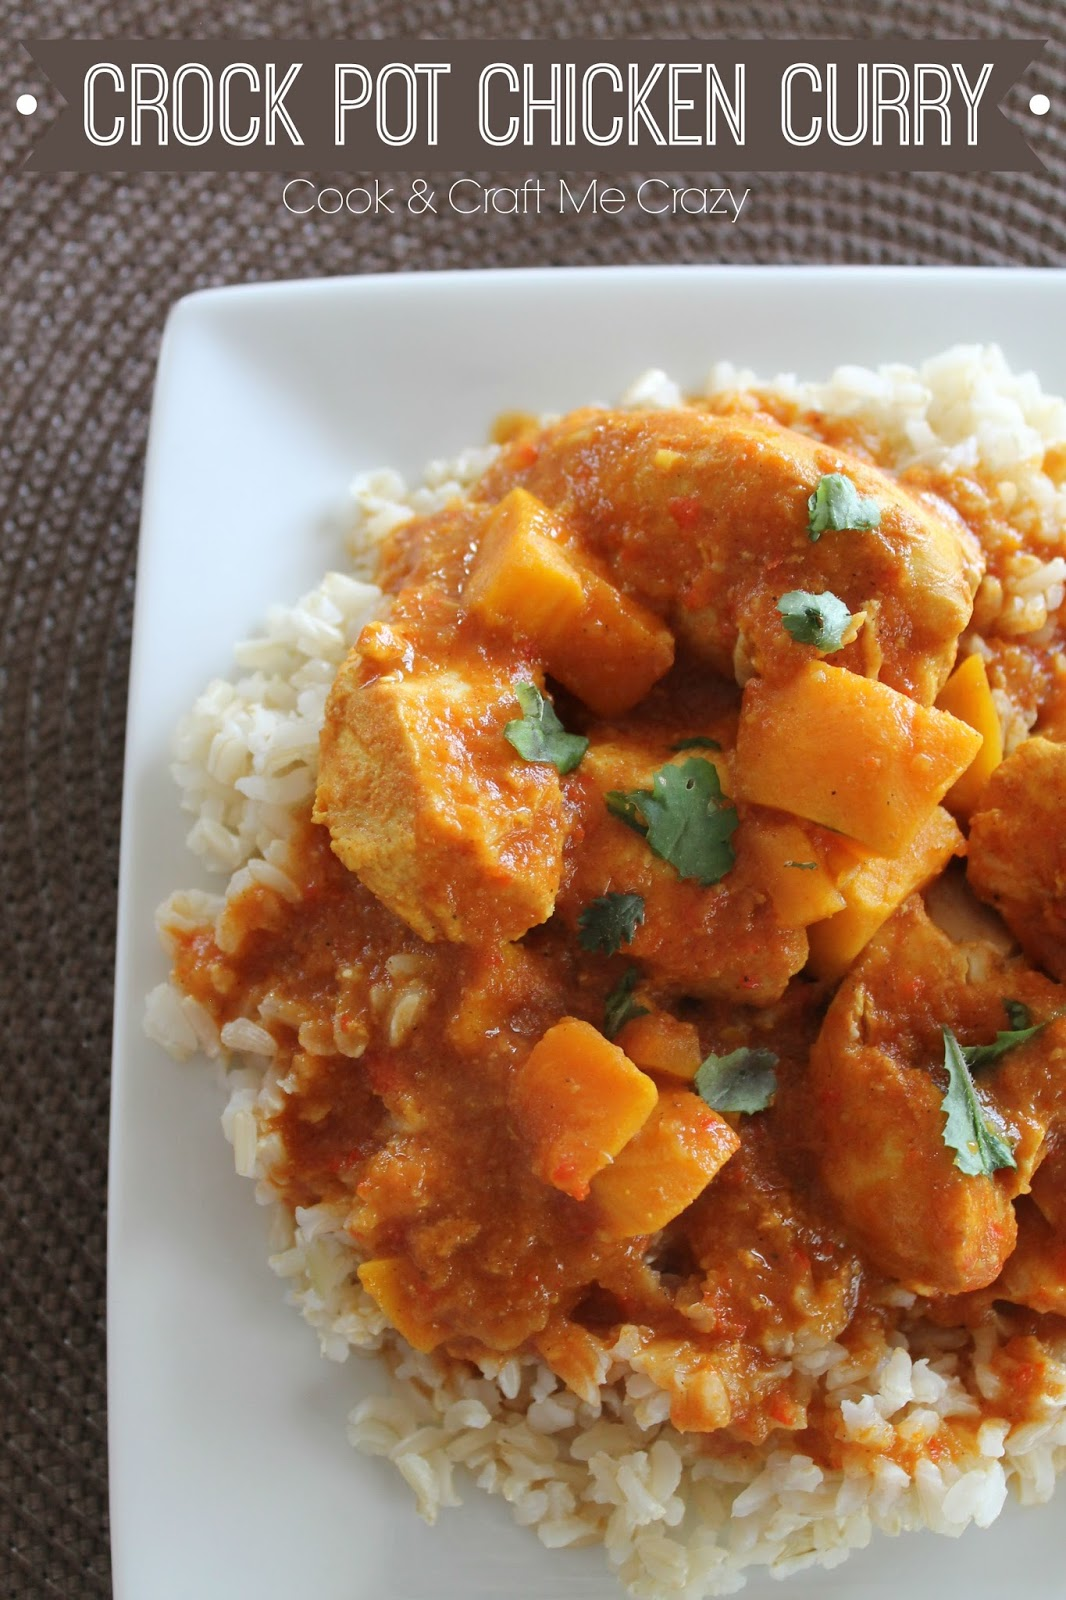 Cook And Craft Me Crazy Crock Pot Chicken Curry